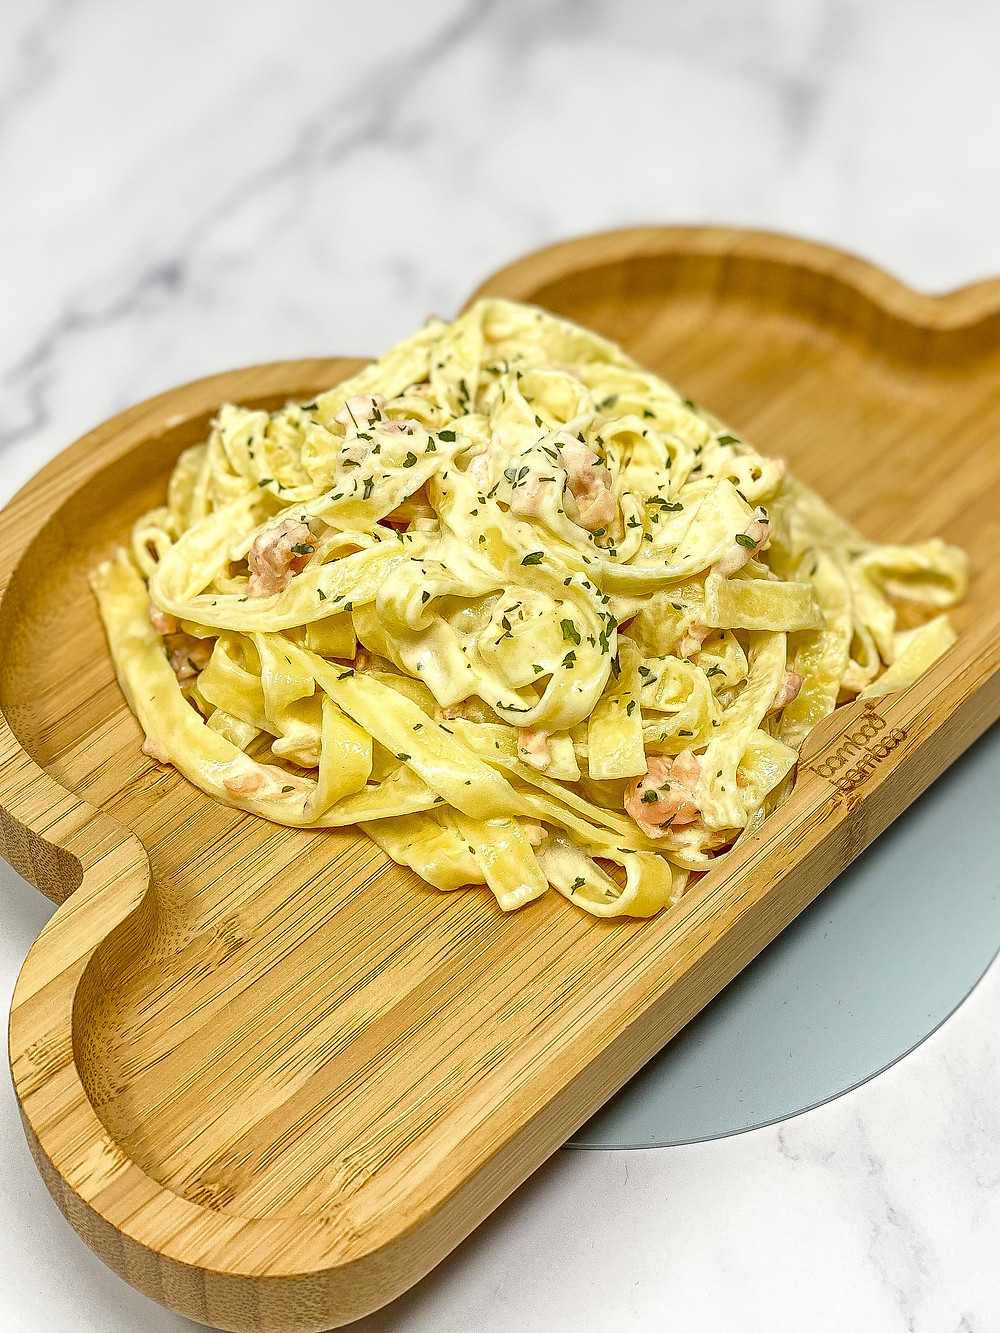 CREAMY SALMON PASTA in bamboo kids plate for blw